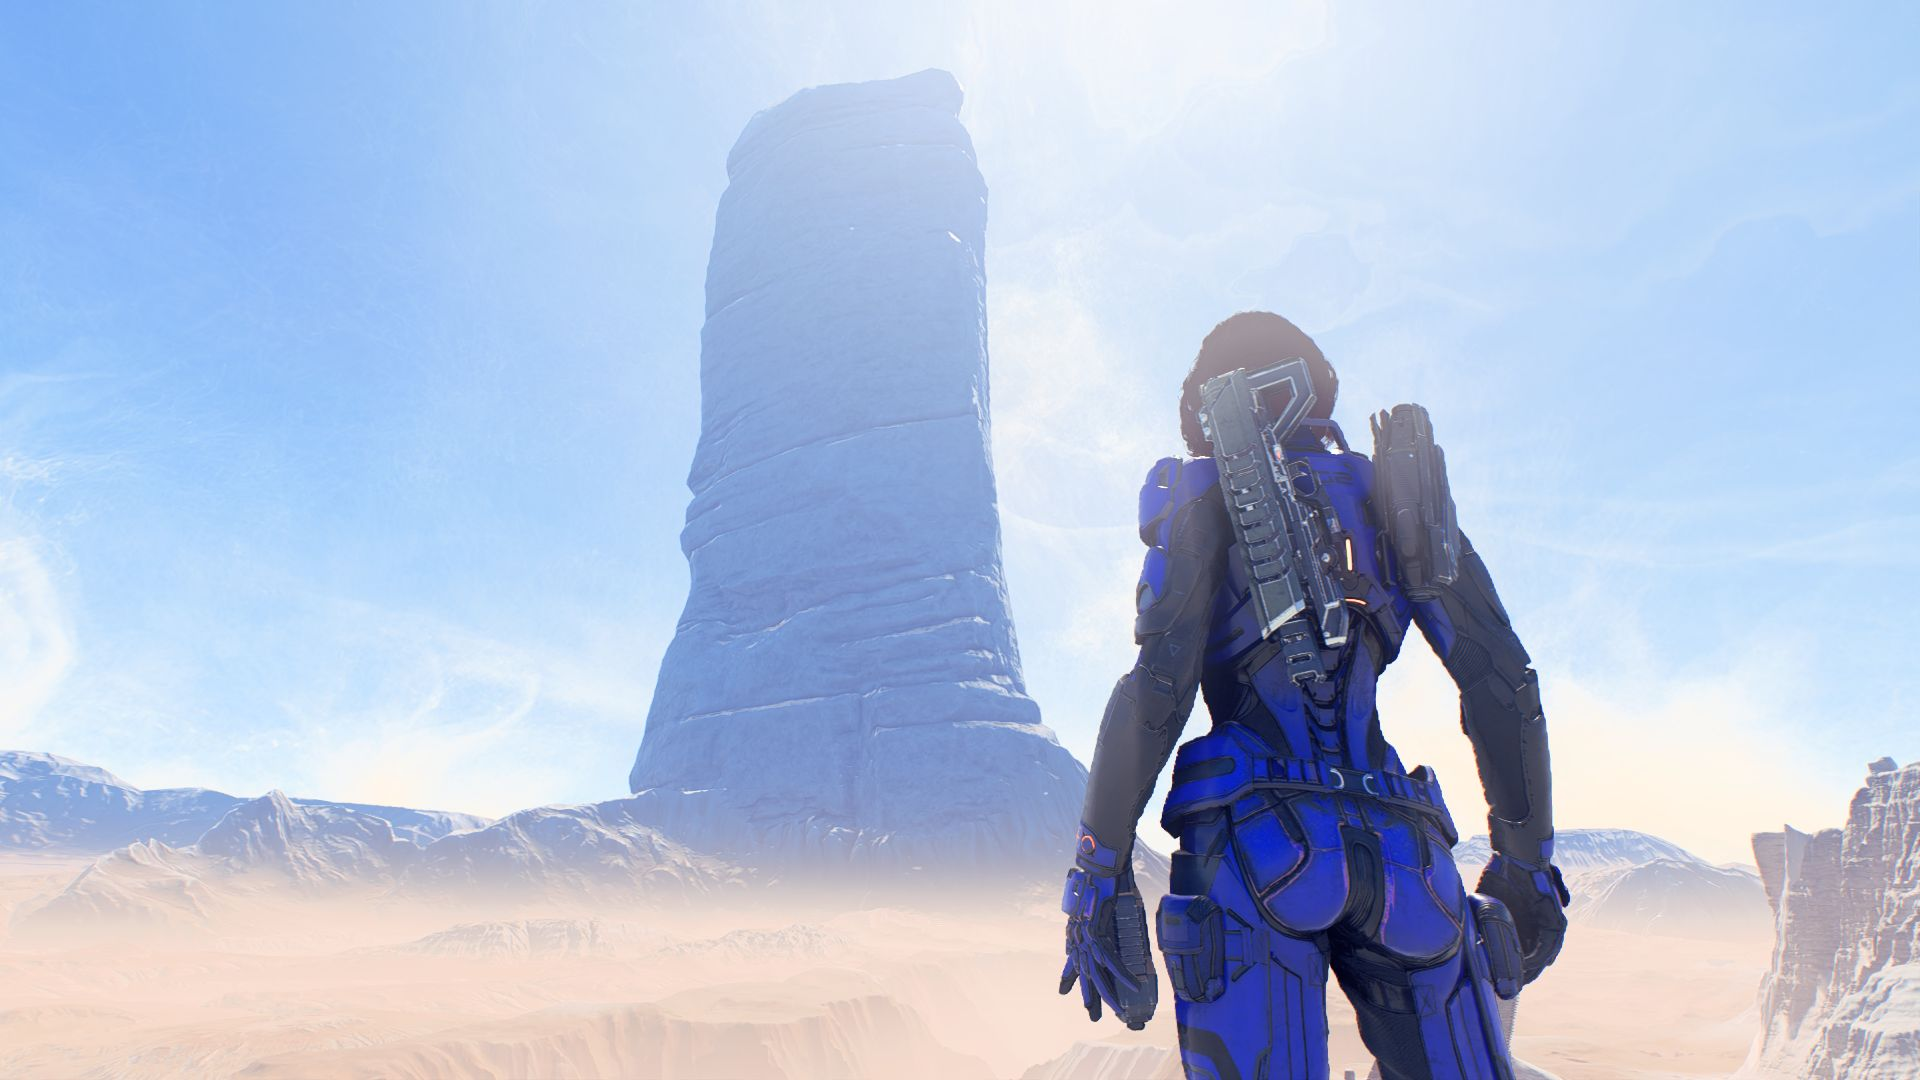 Mass Effect Andromeda Screenshot 2017.07.27 - 20.44.14.36.jpg - Mass Effect: Andromeda